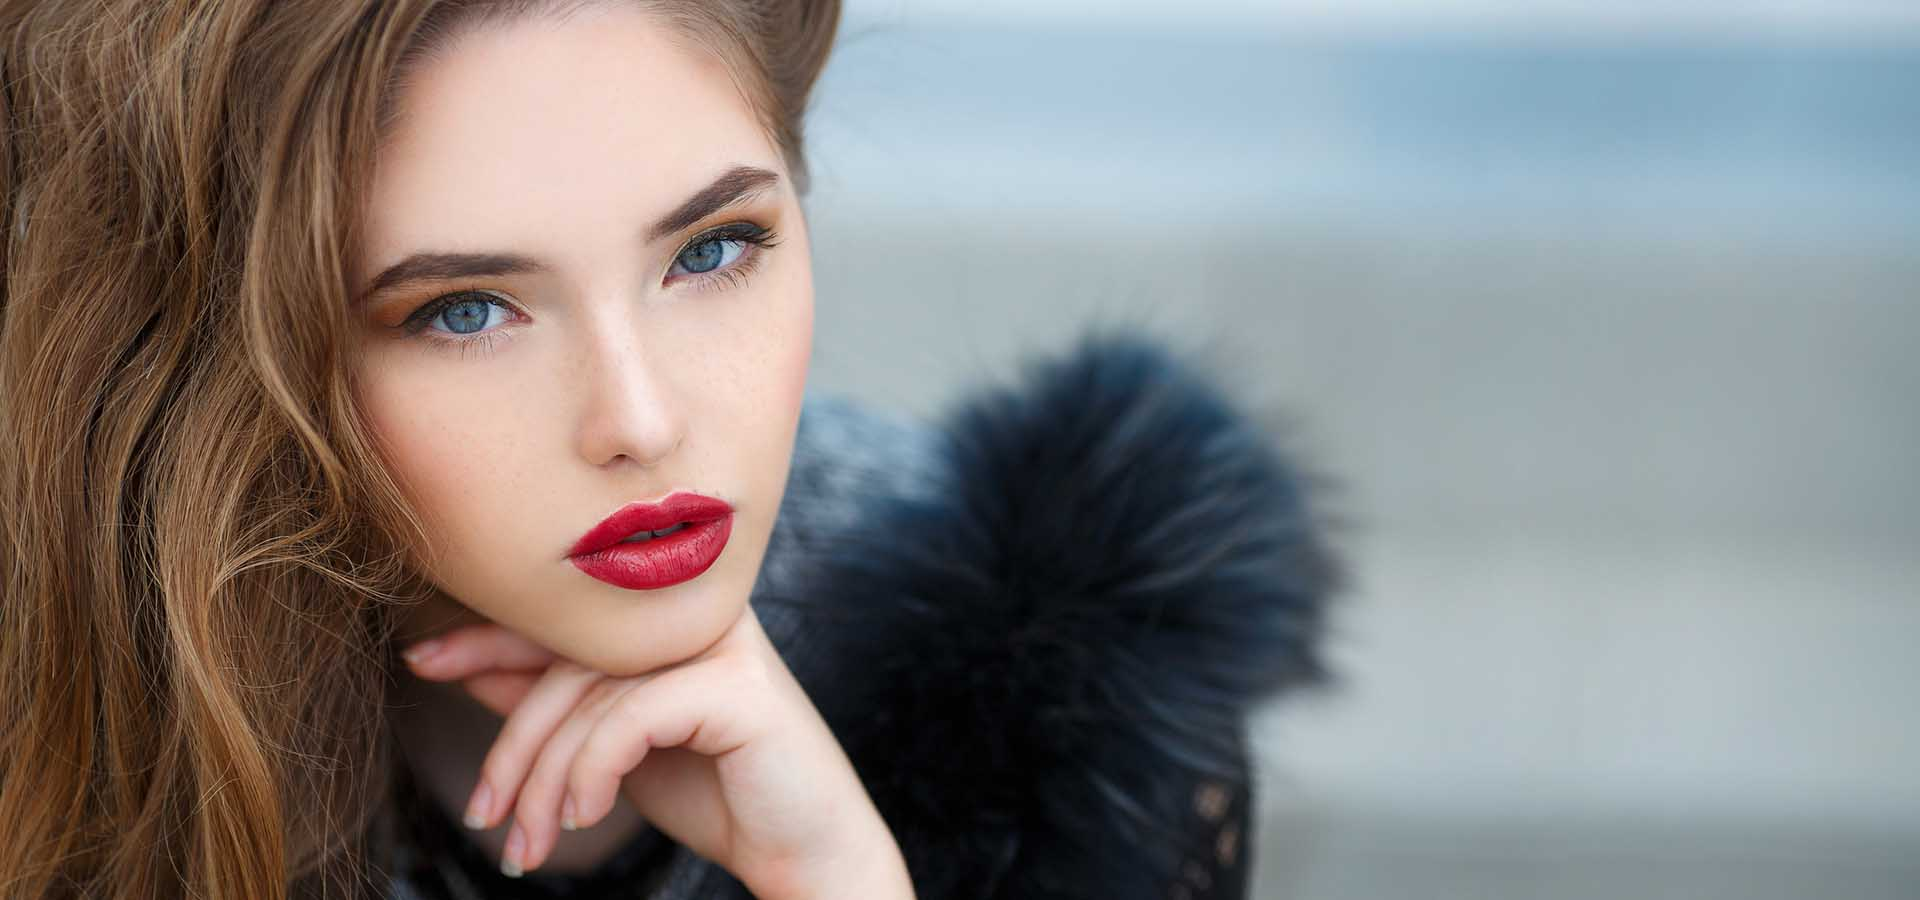 Portrait of beautiful young woman model with long blond curly hair and gray eyes, light makeup and red lipstick, dressed in fur jacket, autumn photo shoot on the background of blurred city streets.